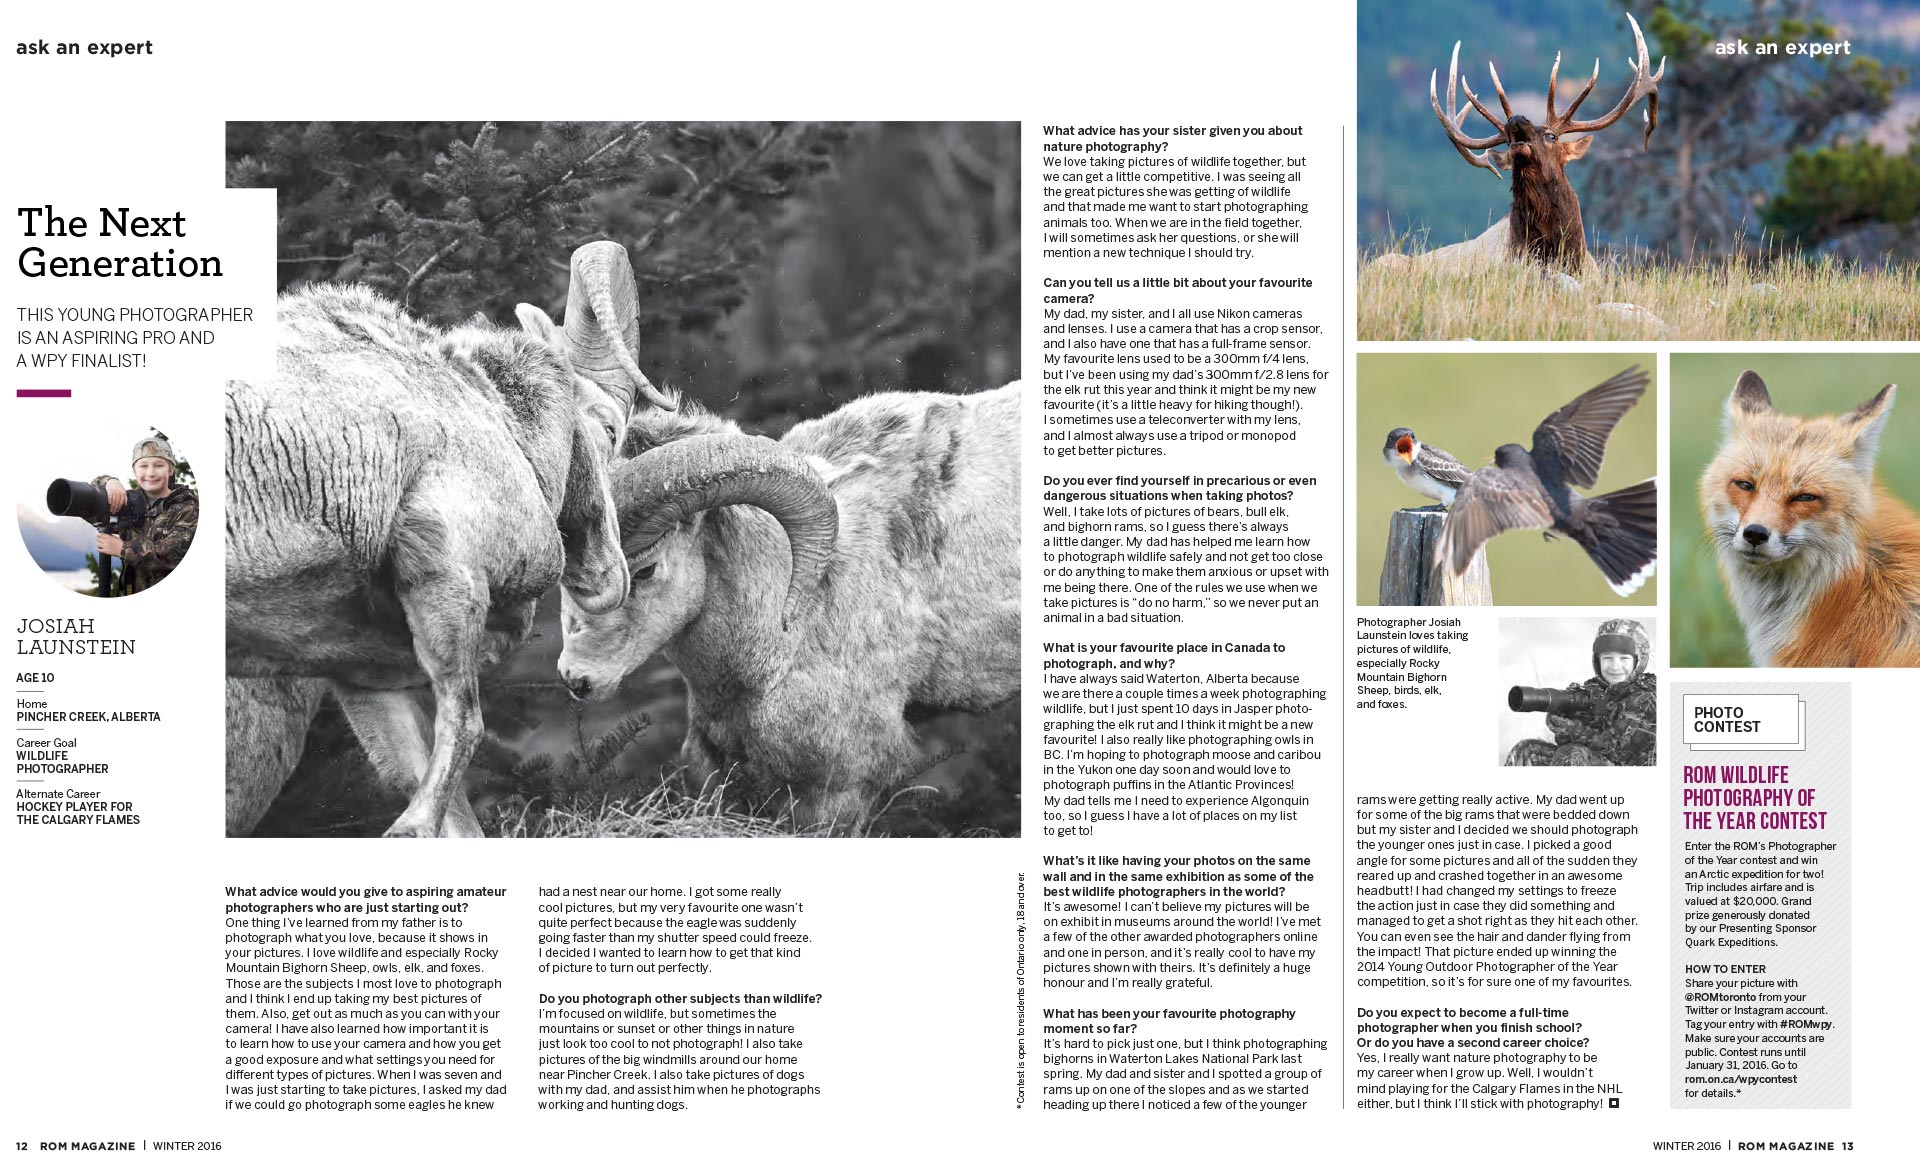 Josiah Launstein Feature in ROM (Royal Ontario Museum) Magazine on Wildlife Photographer of the Year Awards and his Wildlife Photography